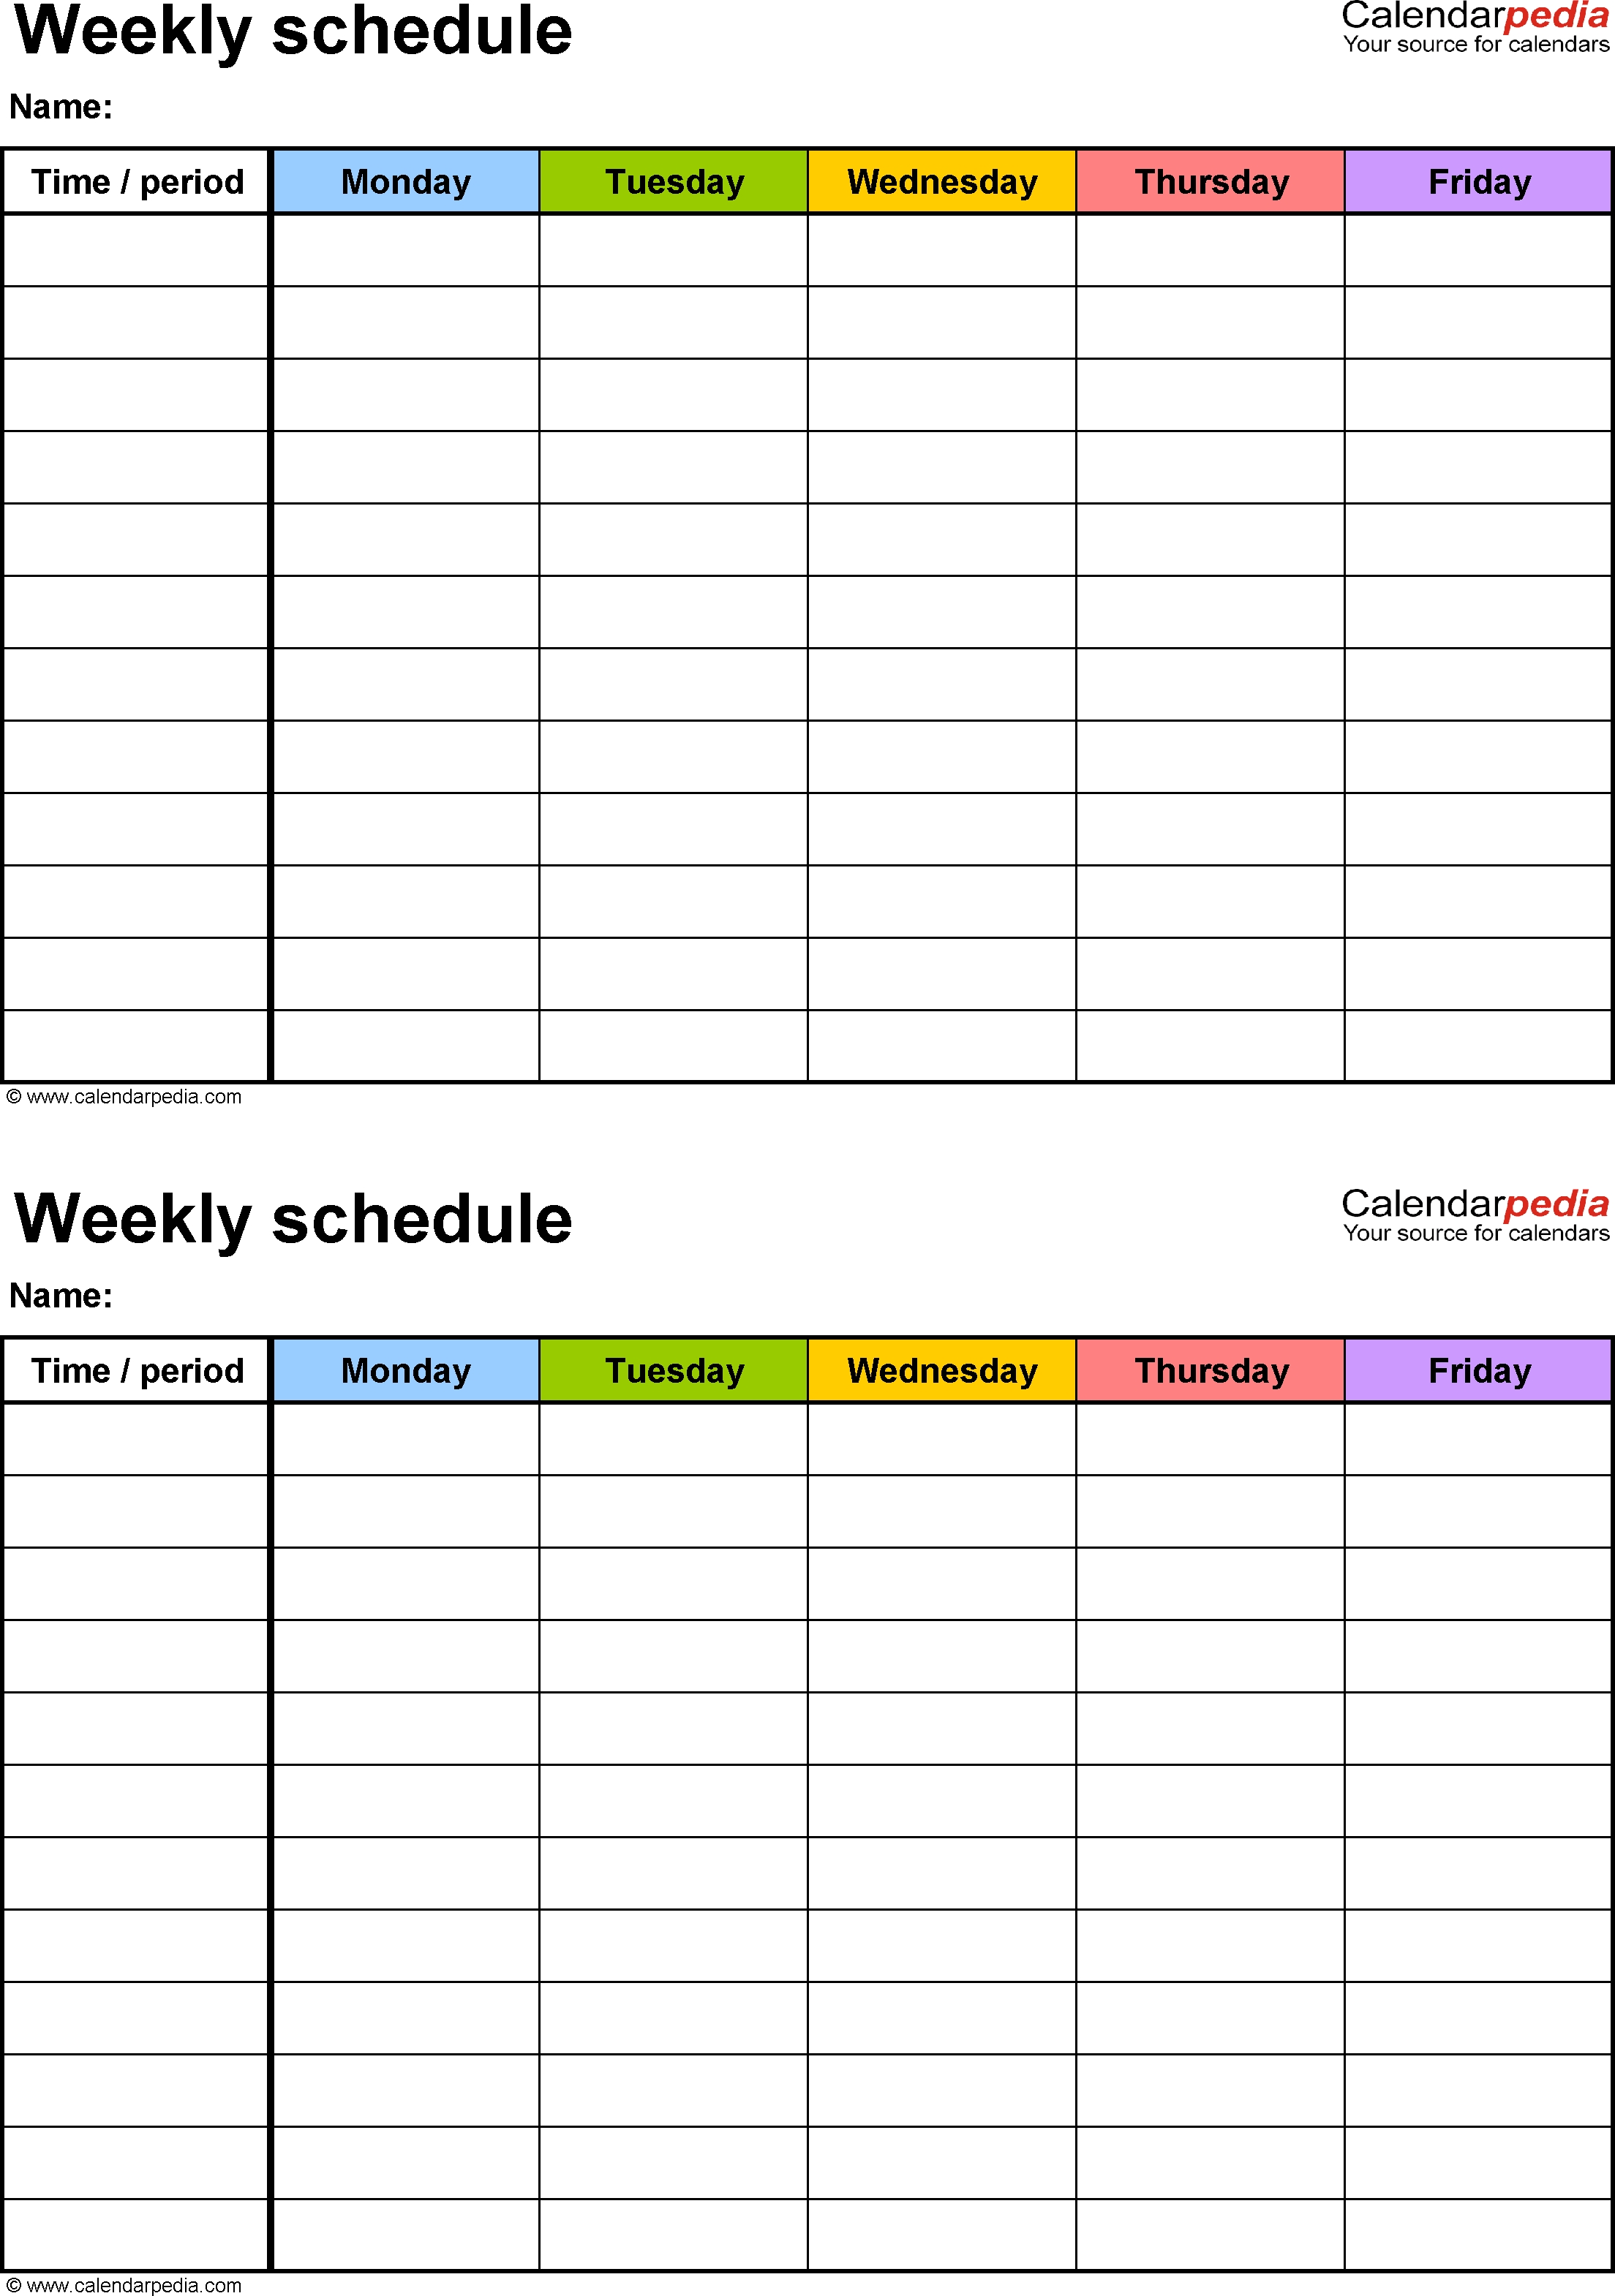 Free Weekly Schedule Templates For Word - 18 Templates regarding Printable 5 Day Monthly Calendar